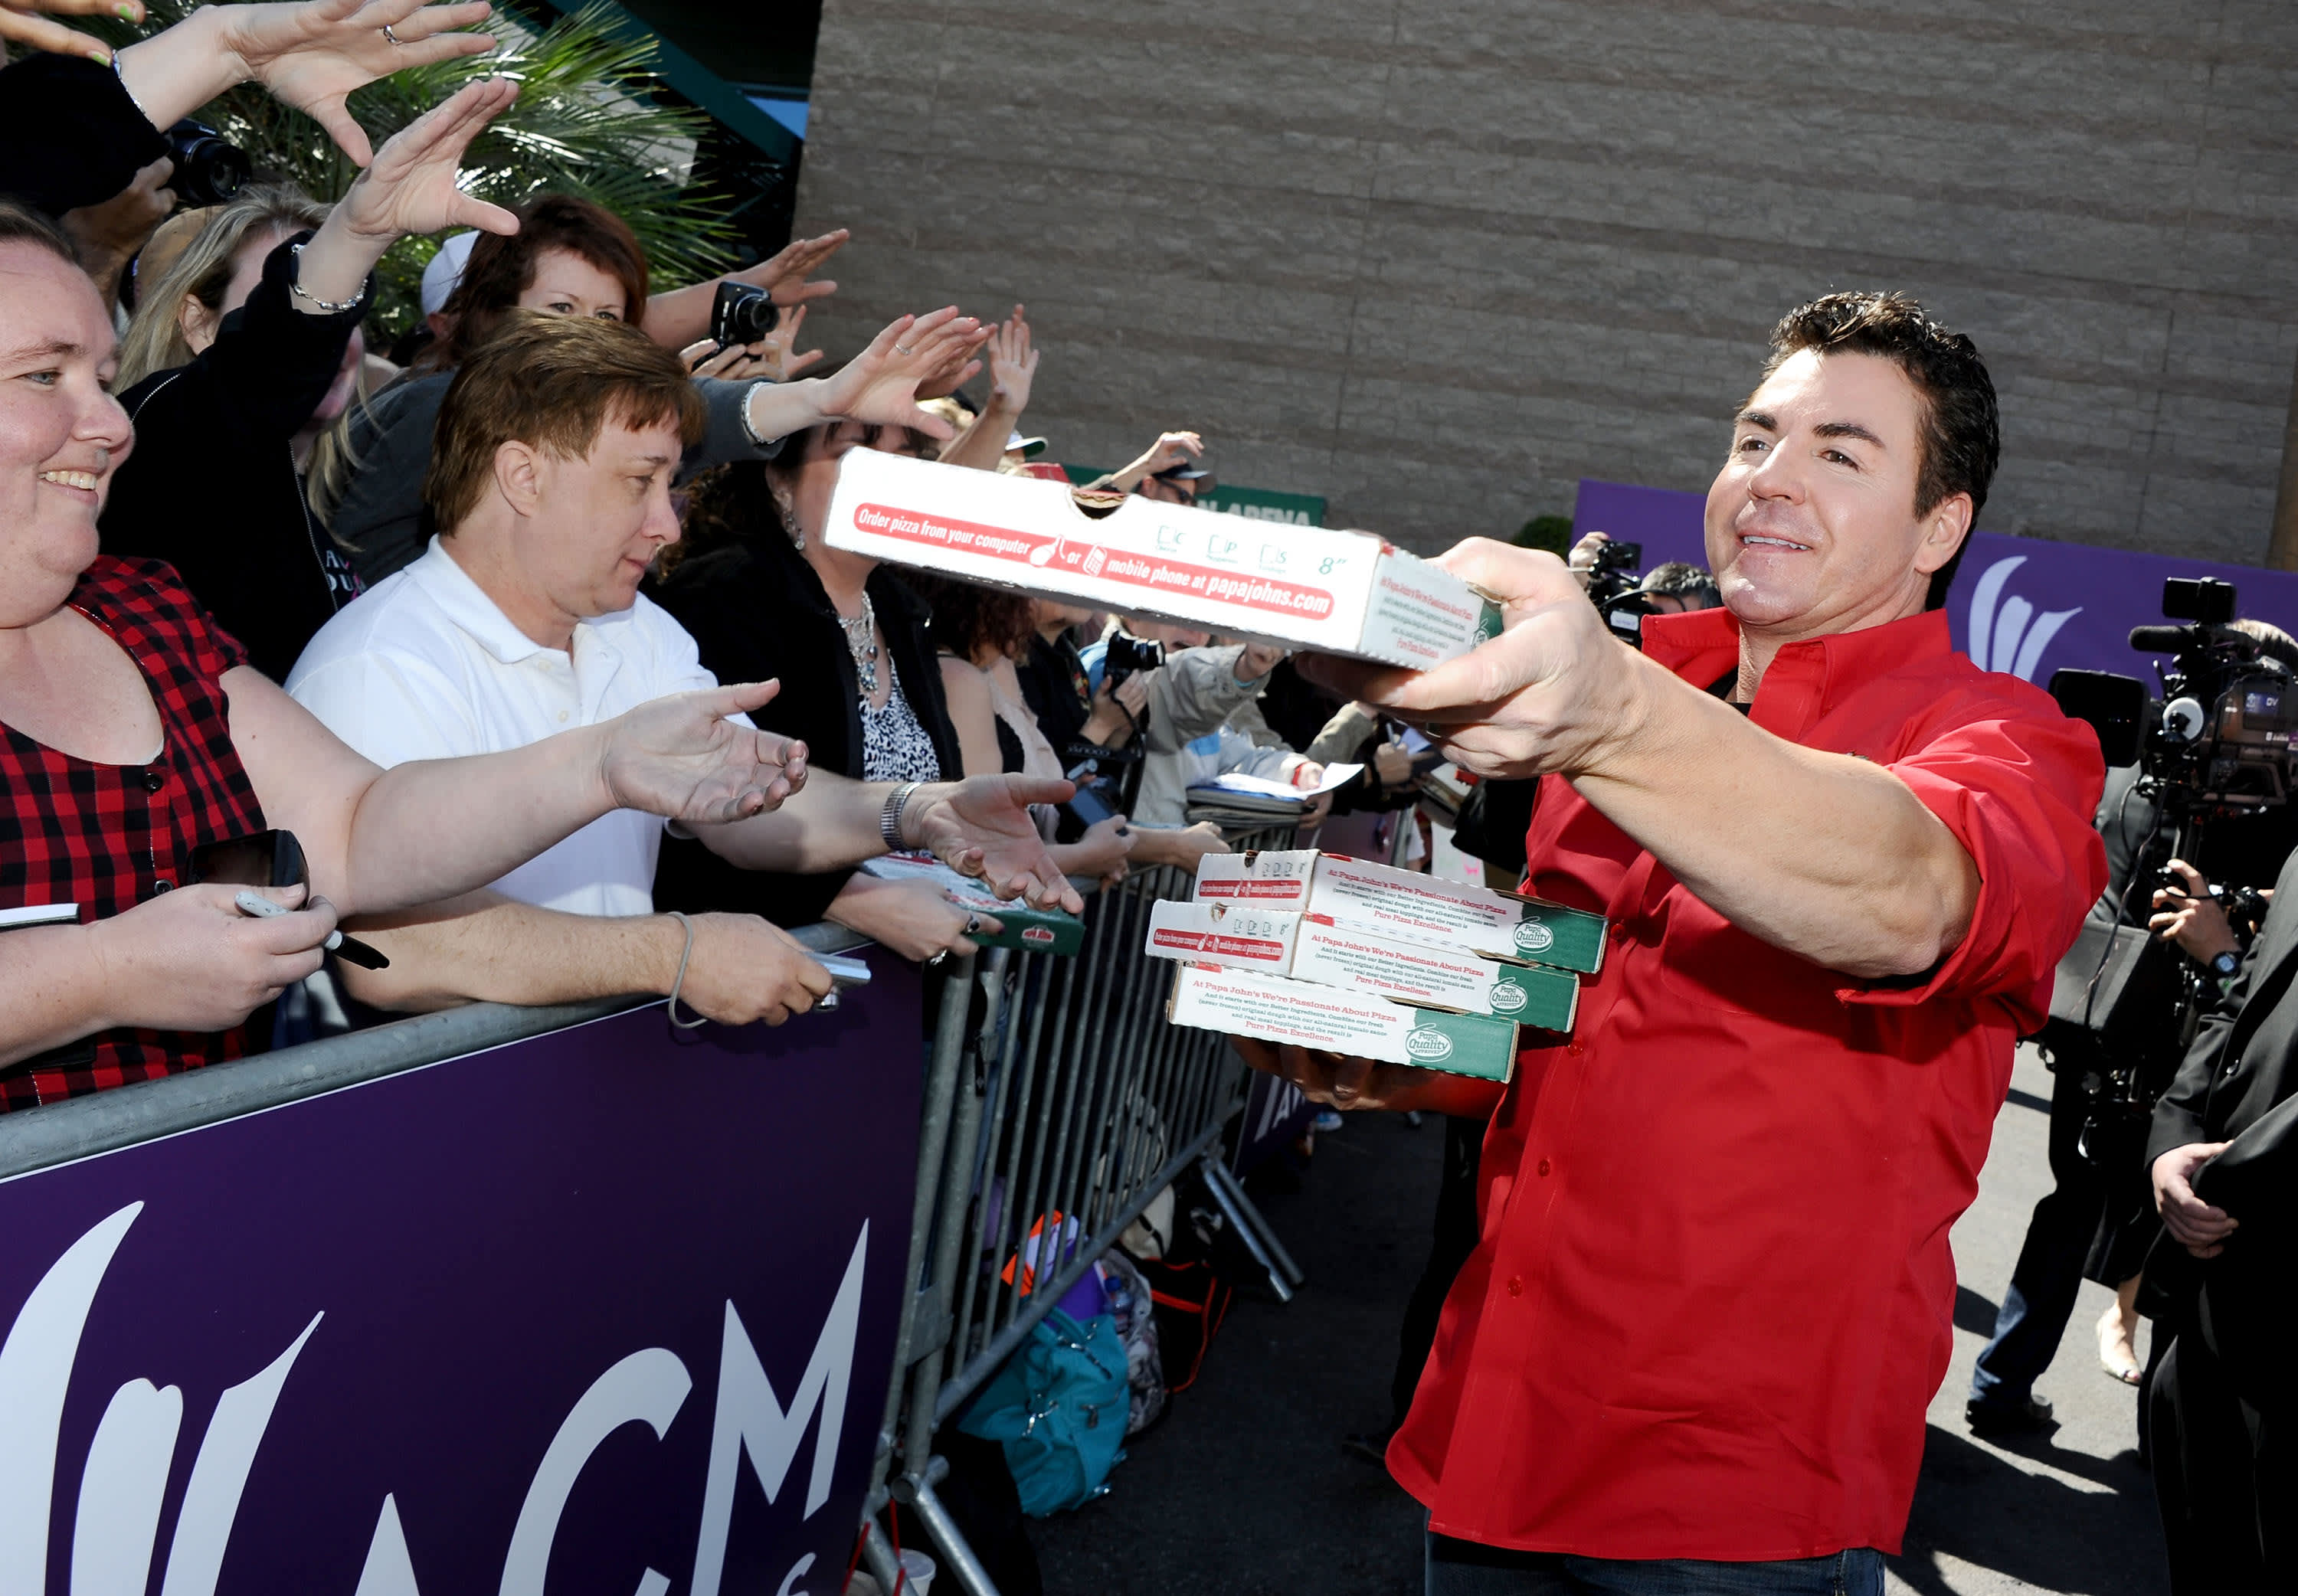 Papa John's founder John Schnatter sells 3.8 million shares, but remains largest shareholder for now